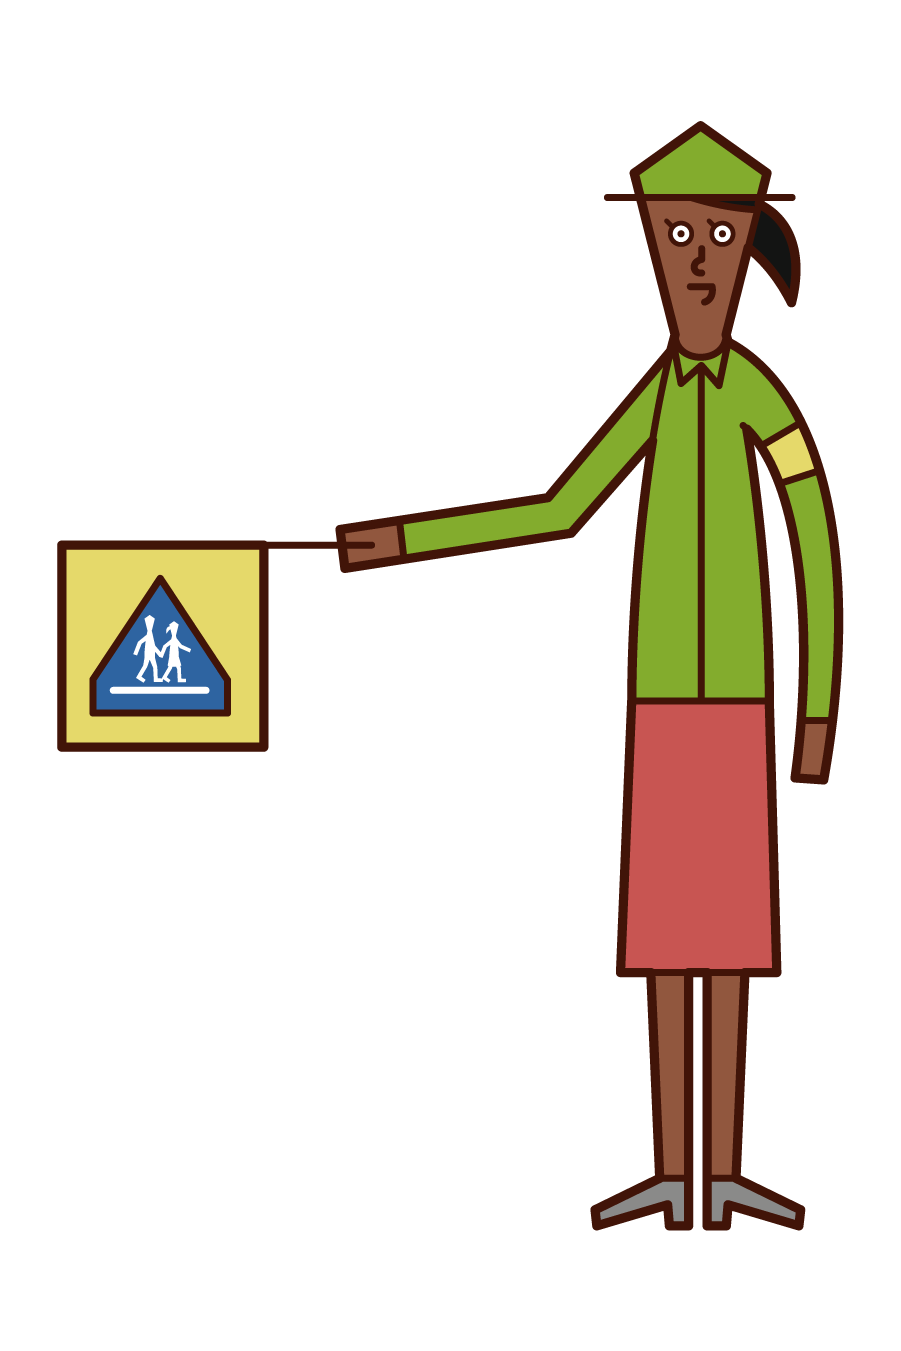 Illustration of a school child defender (woman) wearing a green hat and clothes